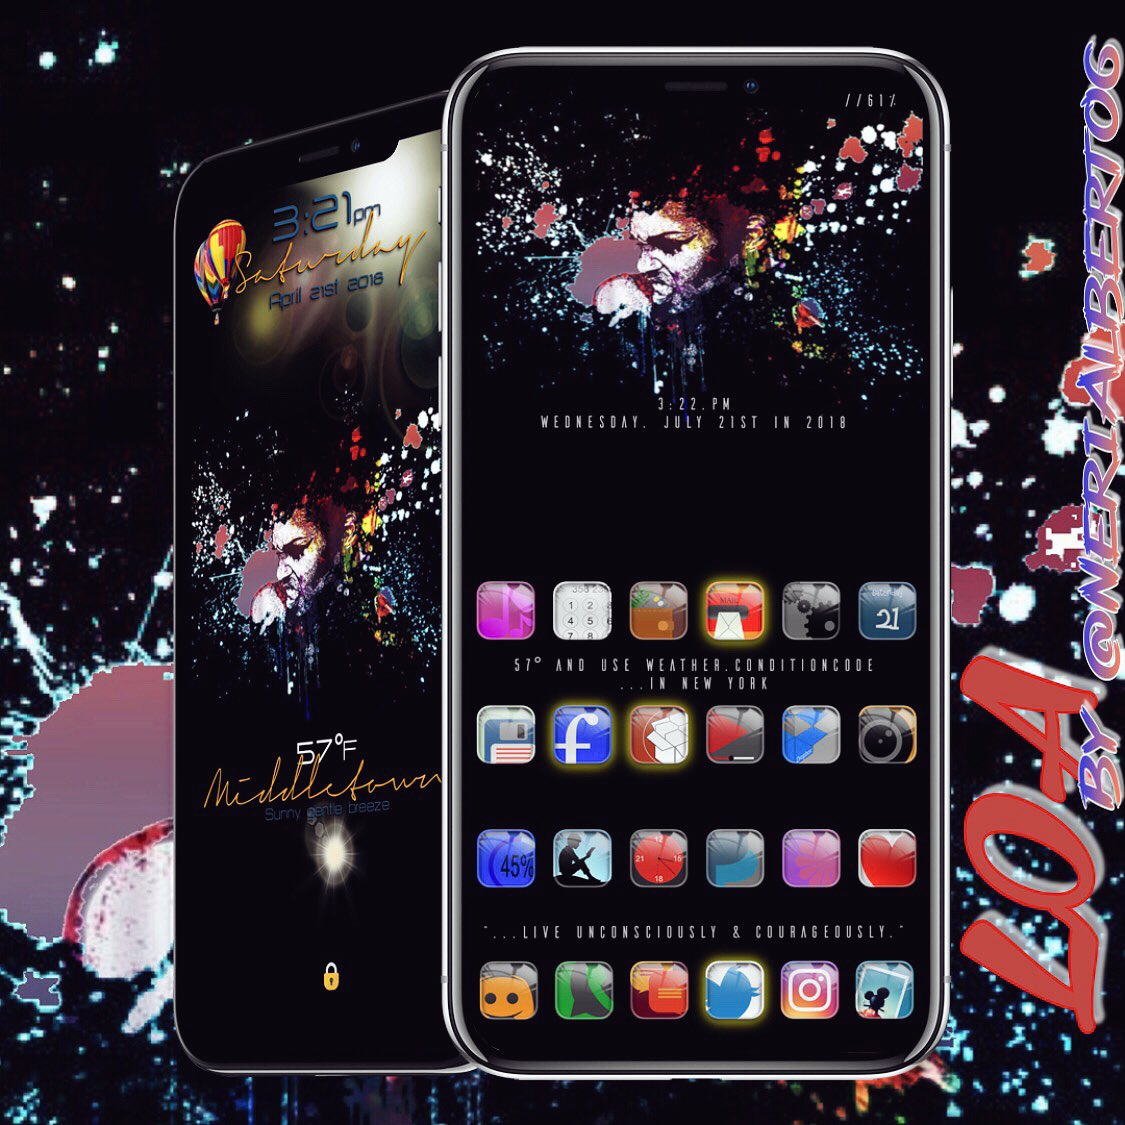 """""""Living Unconsciously Couragous"""" w/ LOA by @nerialberto6. A theme that's Colorful, beautiful &amp; bold! Daps To: @chvylvr6972 #JA1.B3@JunesIphone #xeninfo @prosper406 #ae.glass #uniaw7.1_Elegante @zestlabs_ #ReformX @_Matchstic  #XenHTML Ayeee credit to all contributors # <br>http://pic.twitter.com/uW0iVAn12F"""